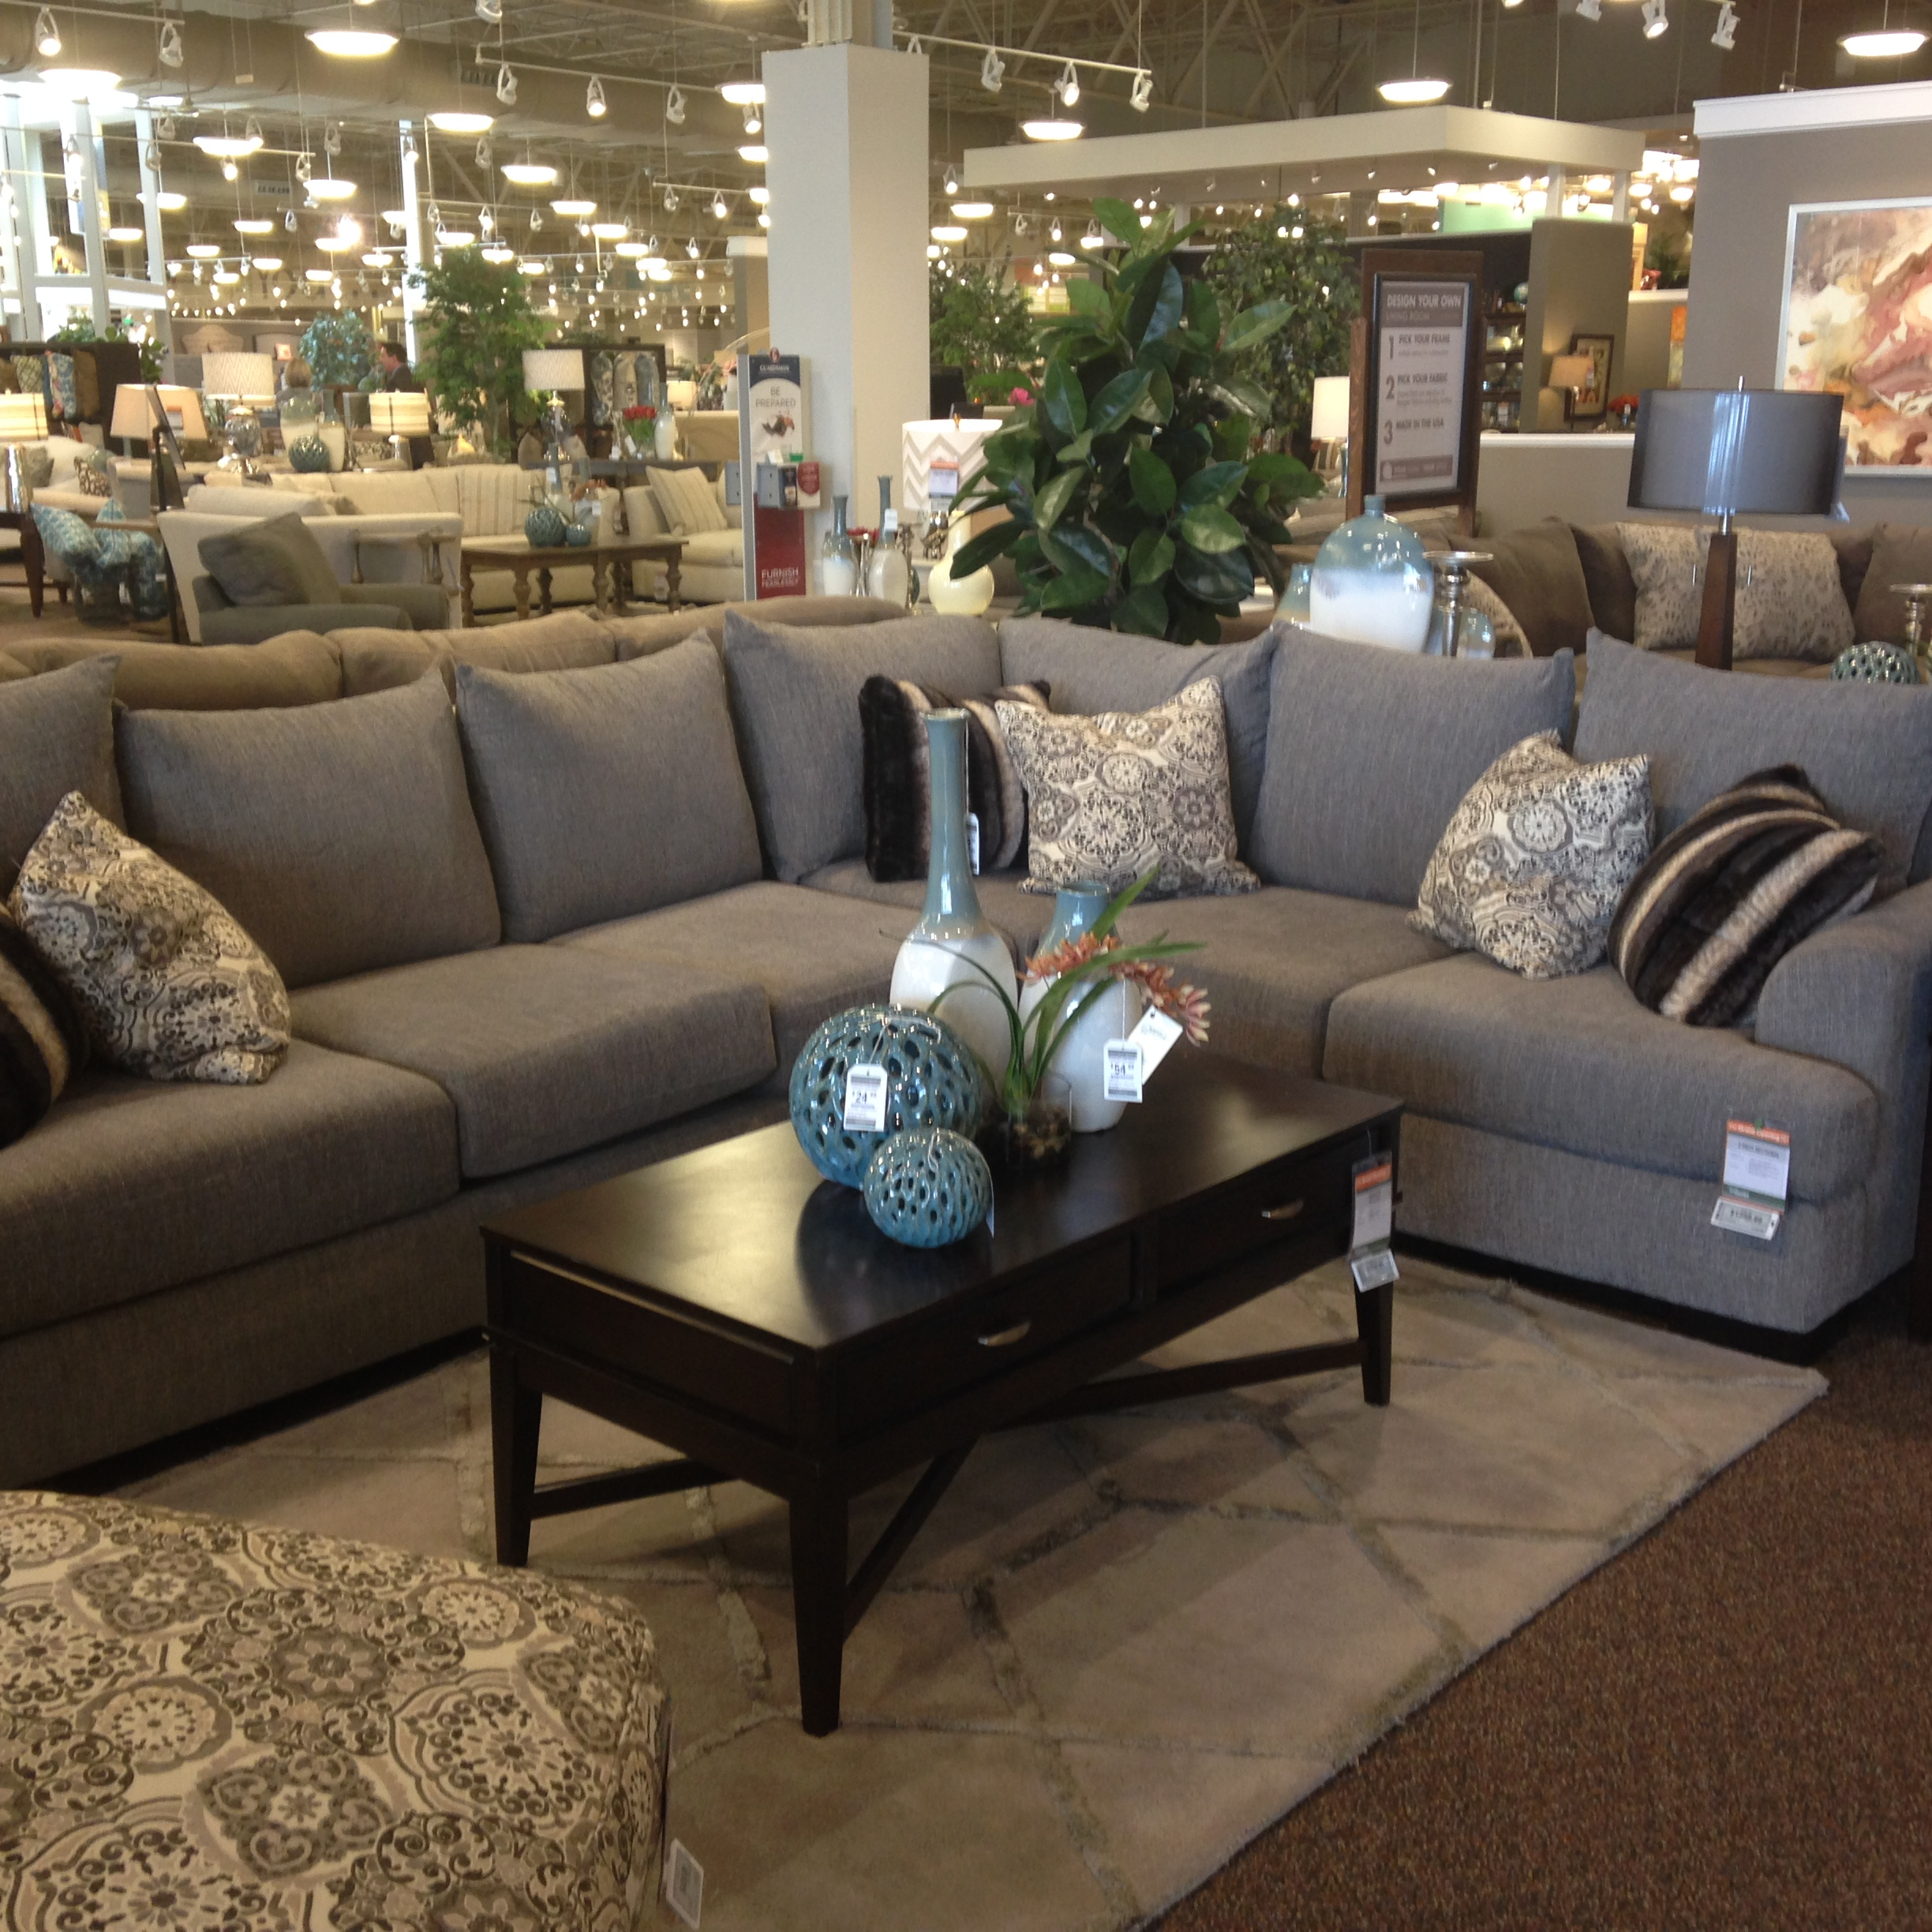 The Furniture Is Organized Like Many Other Furniture Stores U2013 By  Departments Which Include: Bedroom Furniture, Youth U0026 Baby Bedroom (oh My  Gosh, ...